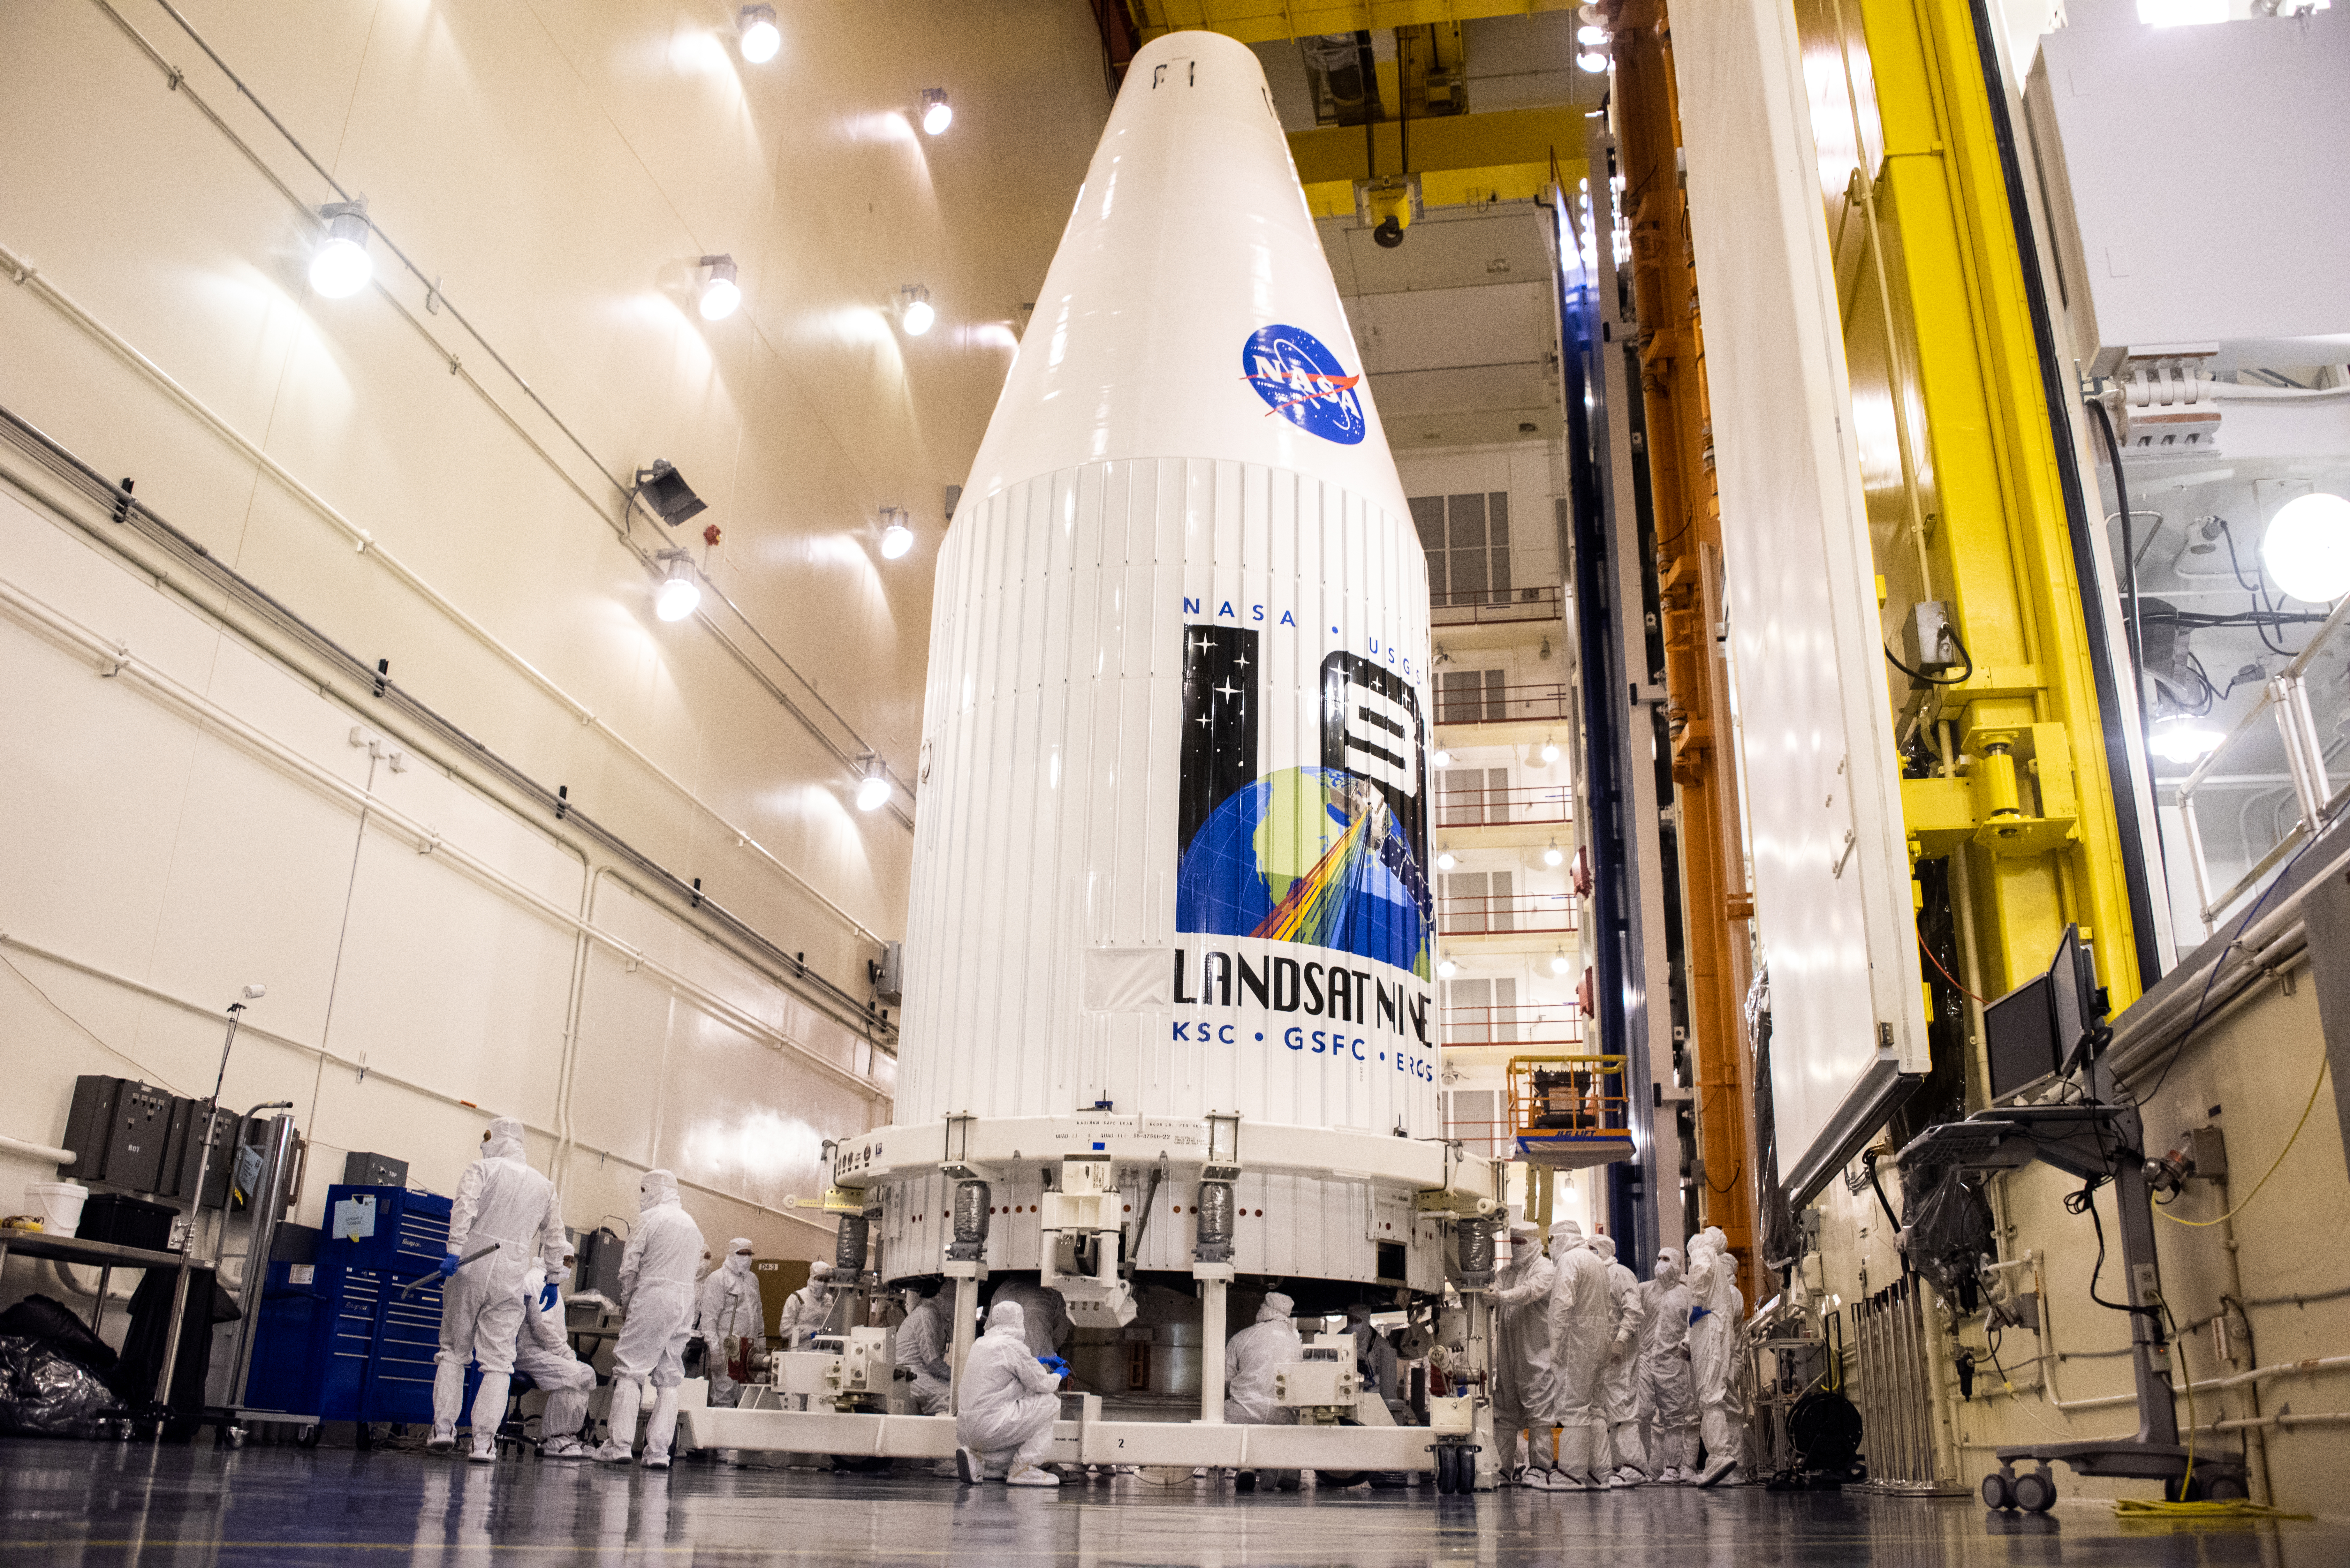 The Landsat 9 spacecraft inside the Integrated Processing Facility at Vandenberg Space Force Base in California